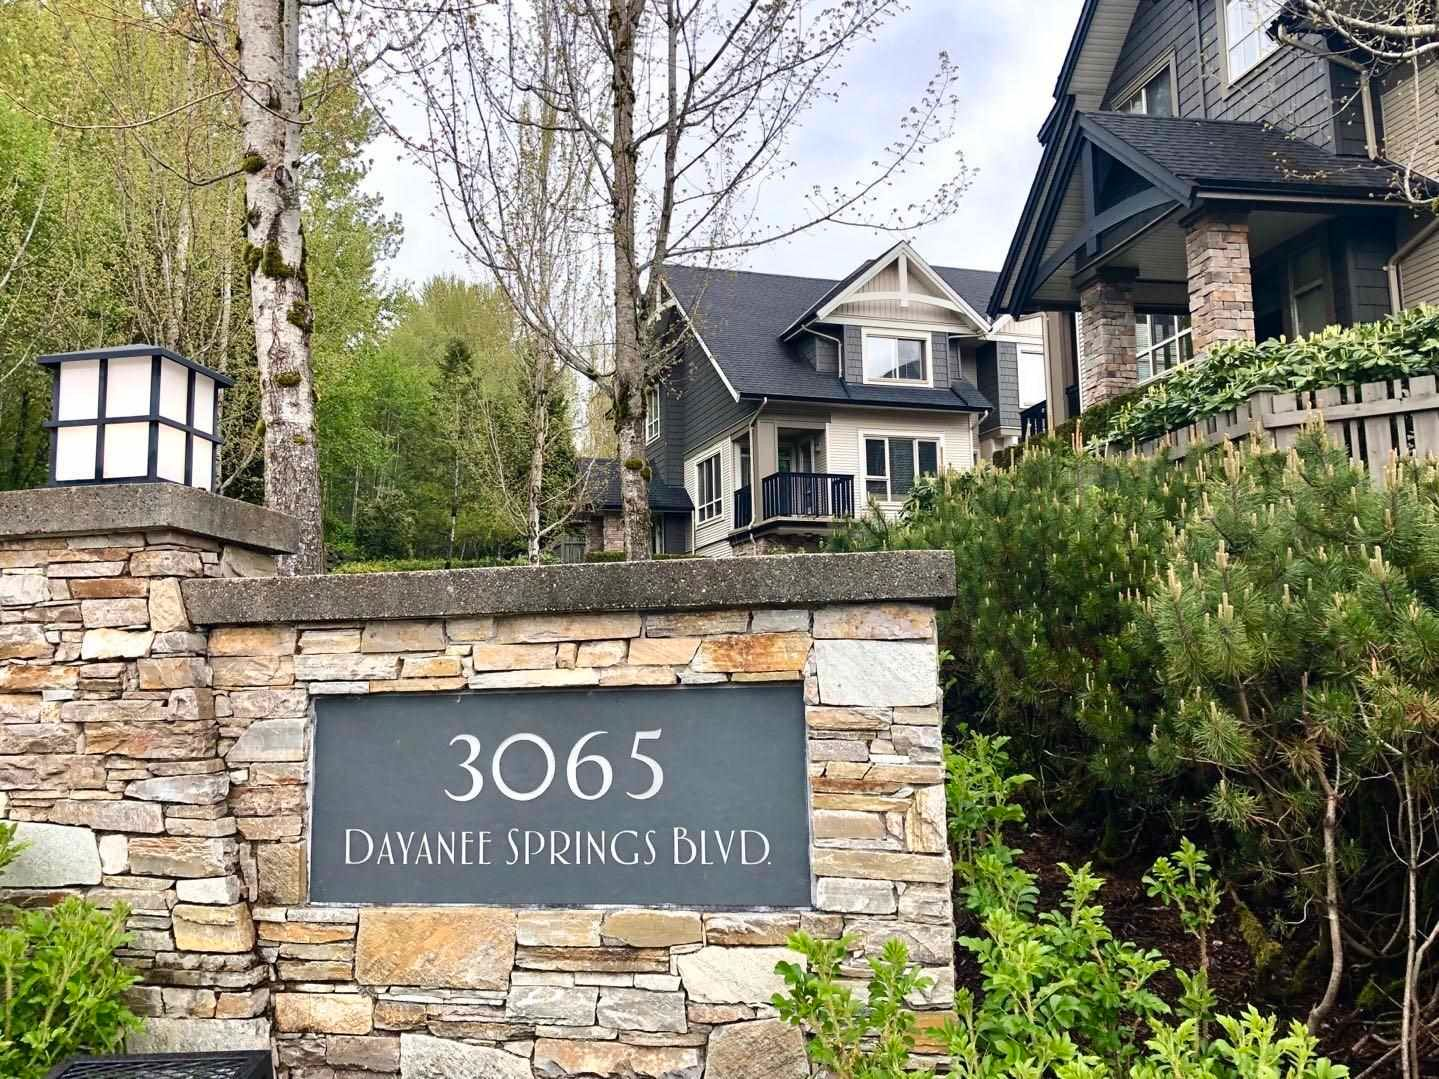 """Main Photo: 9 3065 DAYANEE SPRINGS Boulevard in Coquitlam: Westwood Plateau Townhouse for sale in """"Dayanee Spring"""" : MLS®# R2599107"""